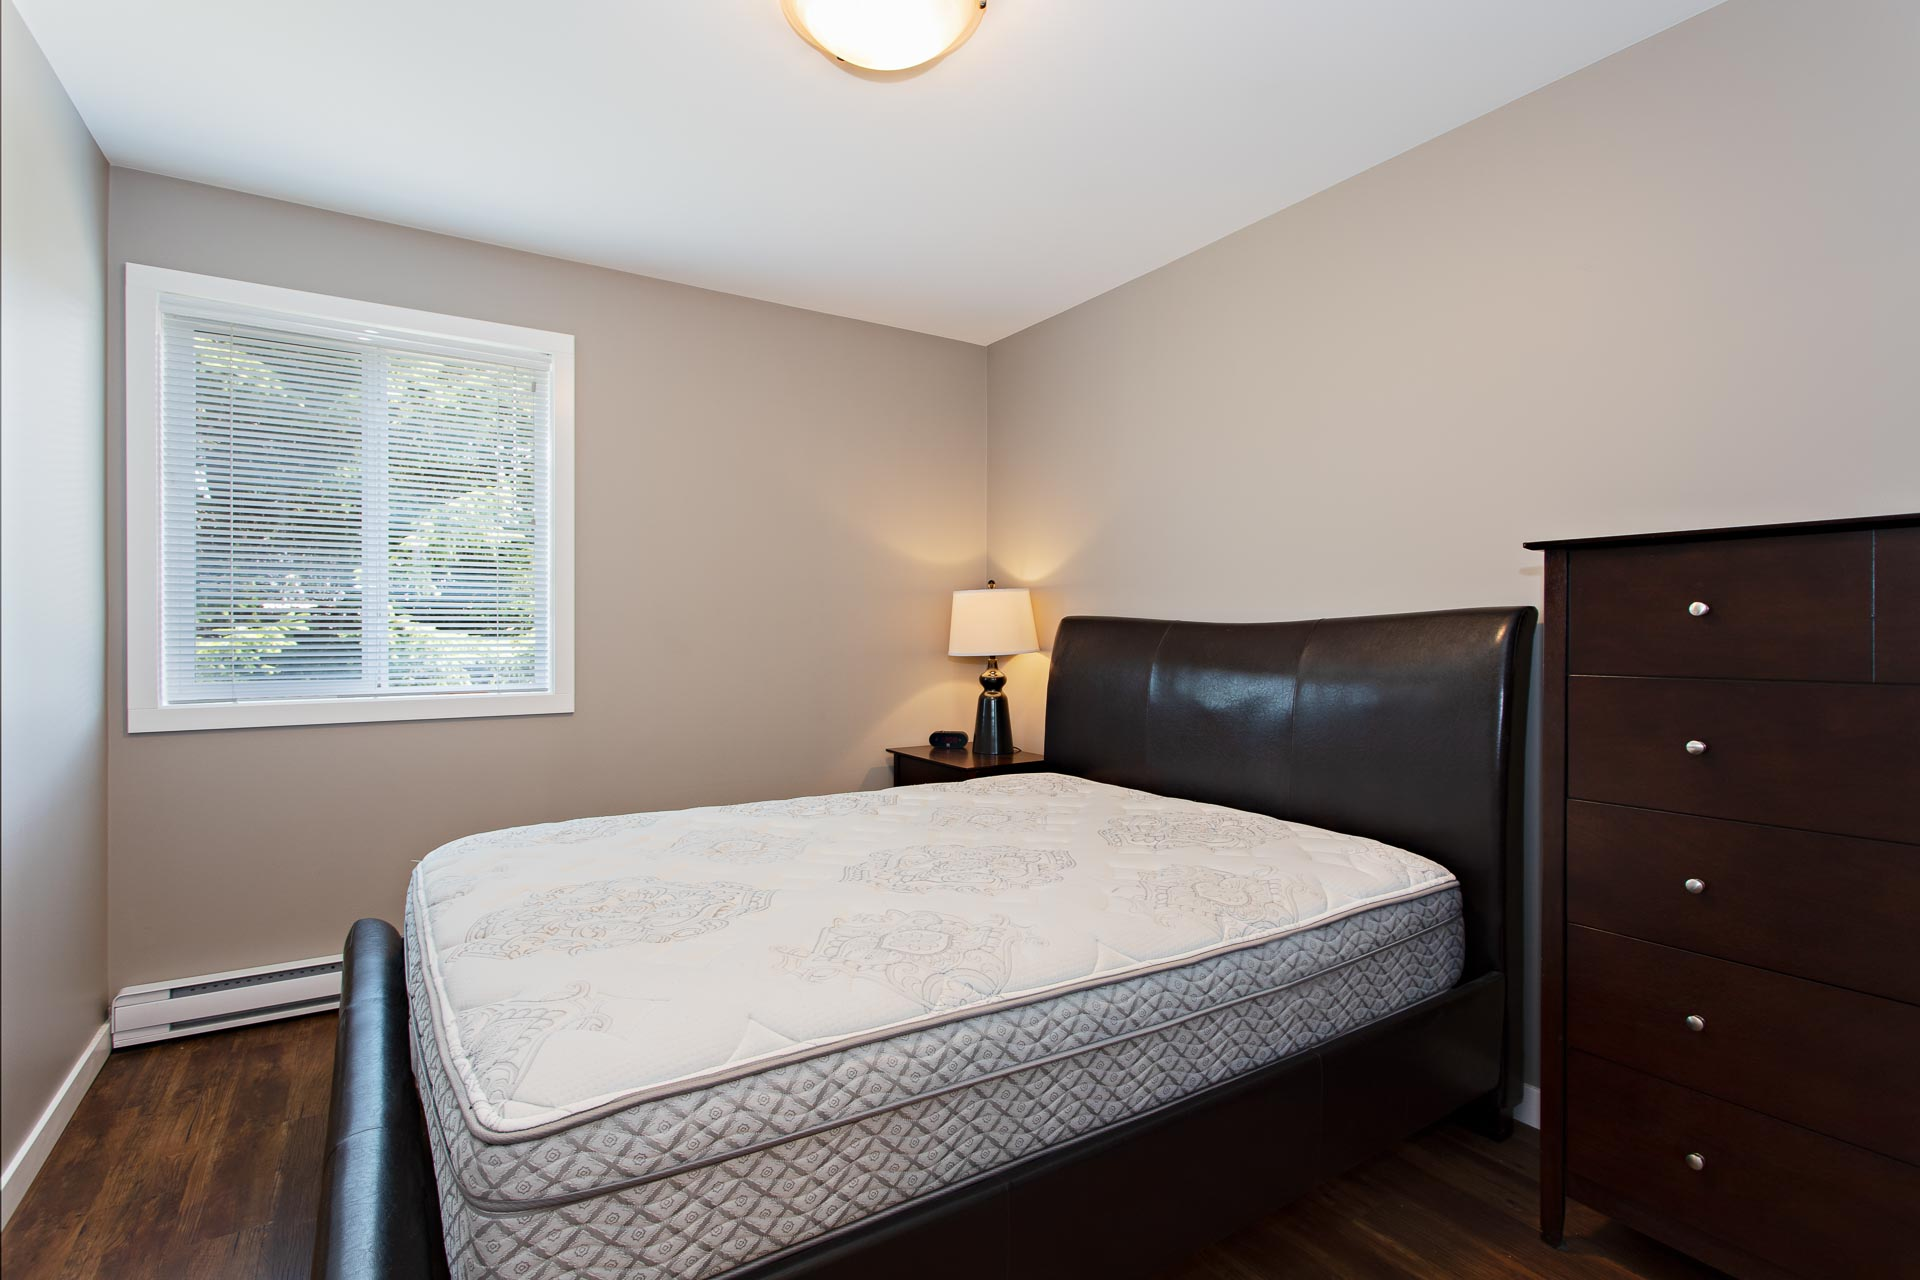 Furnished bedroom at Hillcrest Place Apartments in Kitimat, B.C.